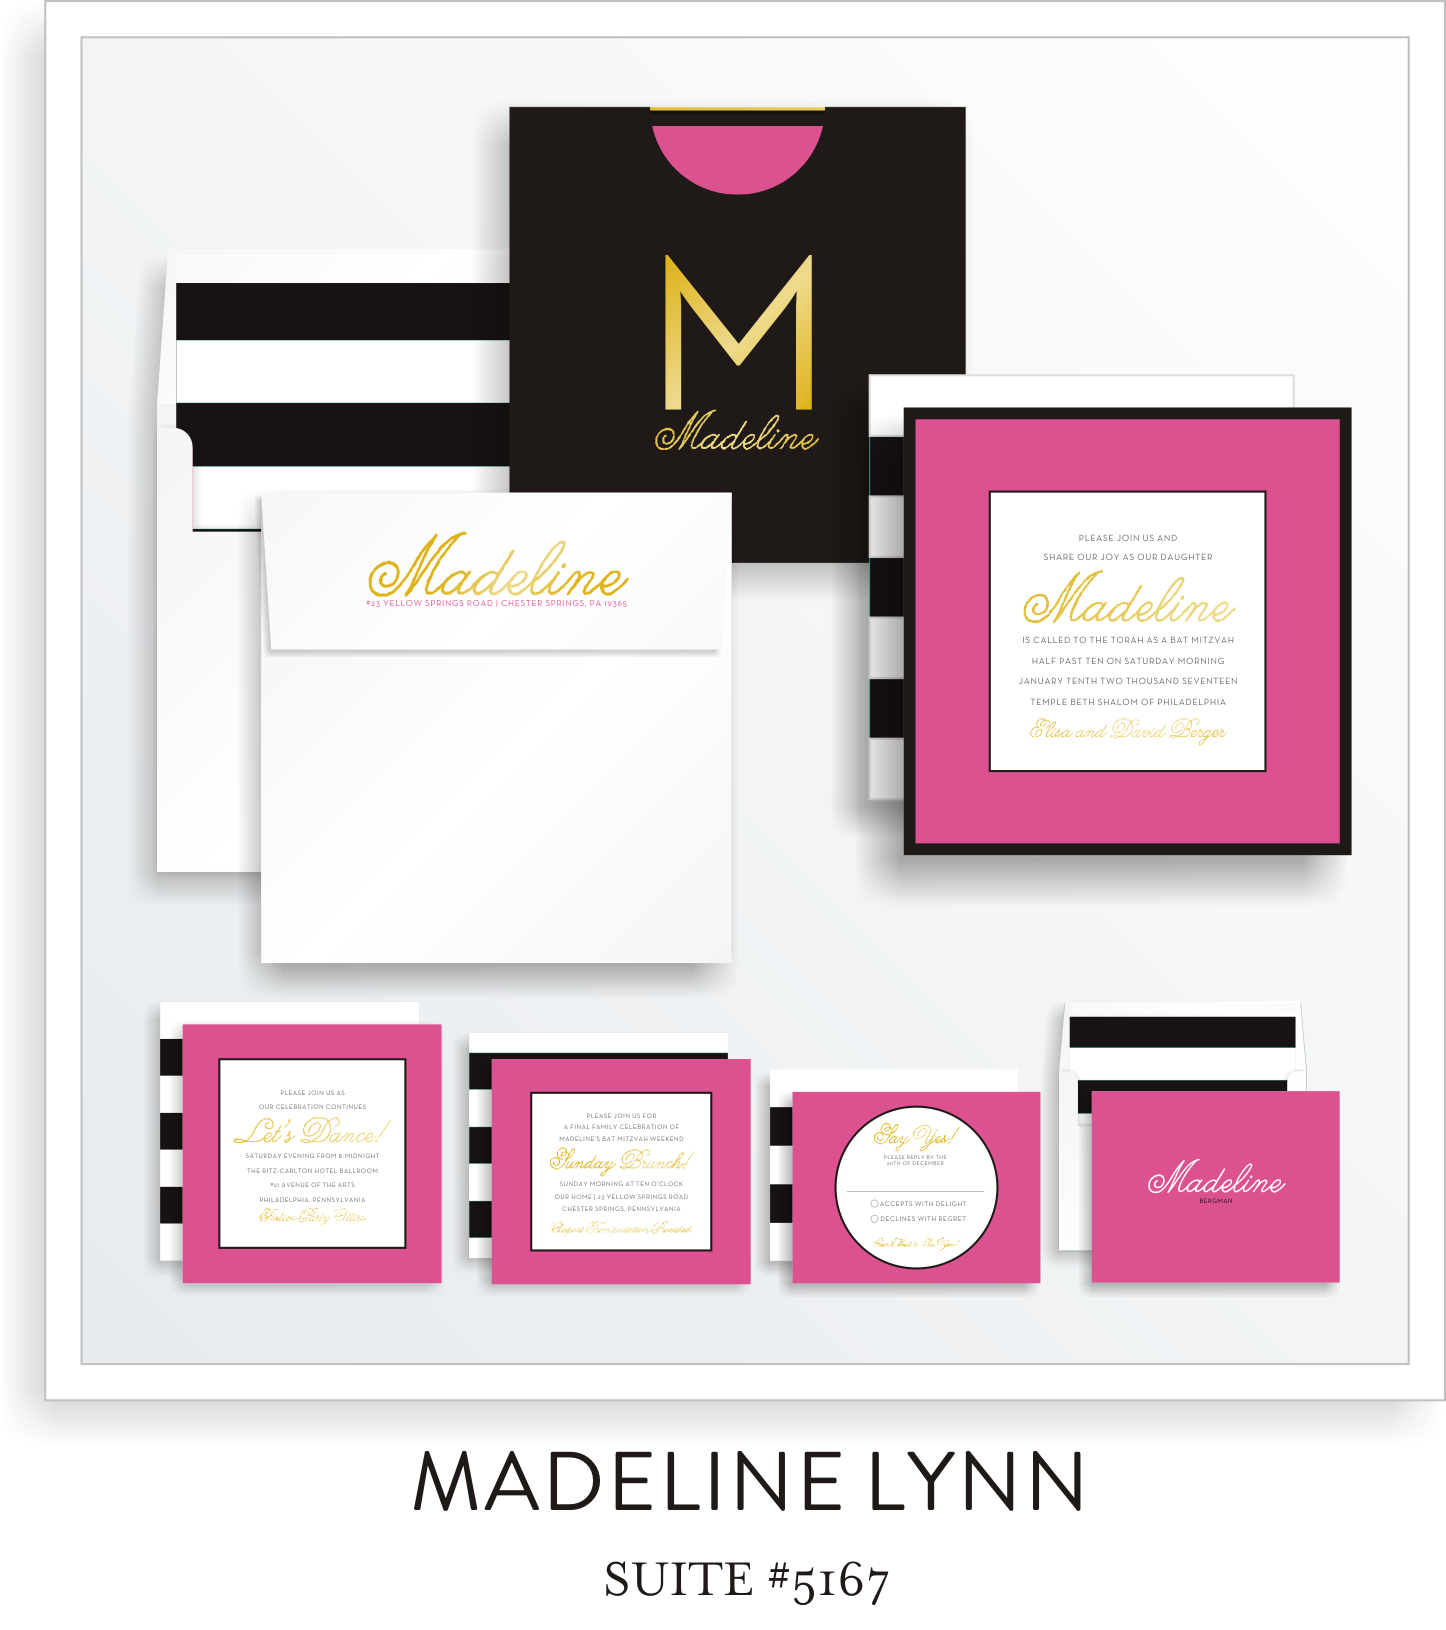 Copy of Bat Mitzvah Invitation Suite 5167 - Madeline Lynn